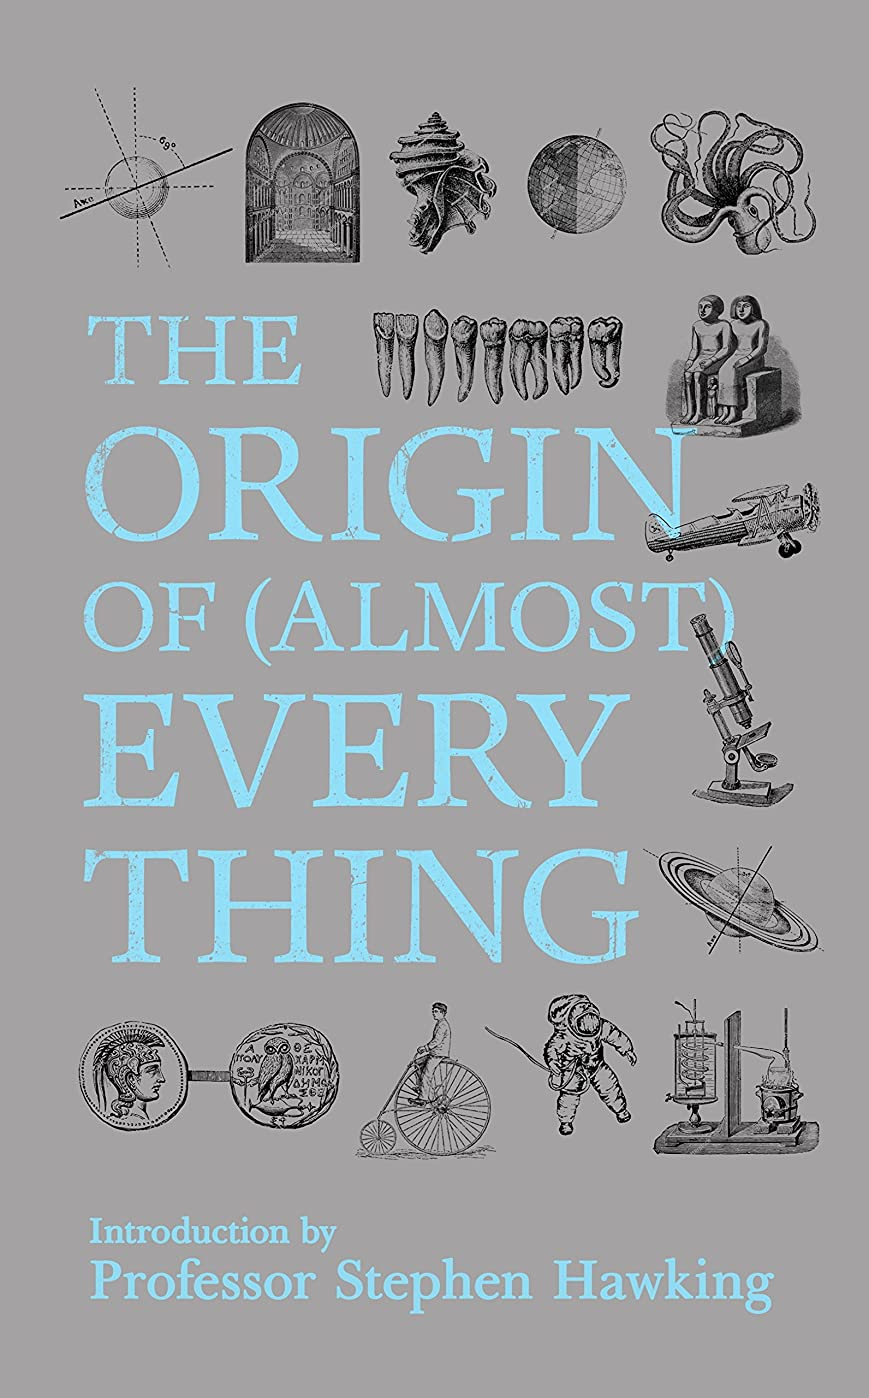 棚エクステント写真を描くNew Scientist: The Origin of (almost) Everything: from the Big Bang to Belly-button Fluff (English Edition)